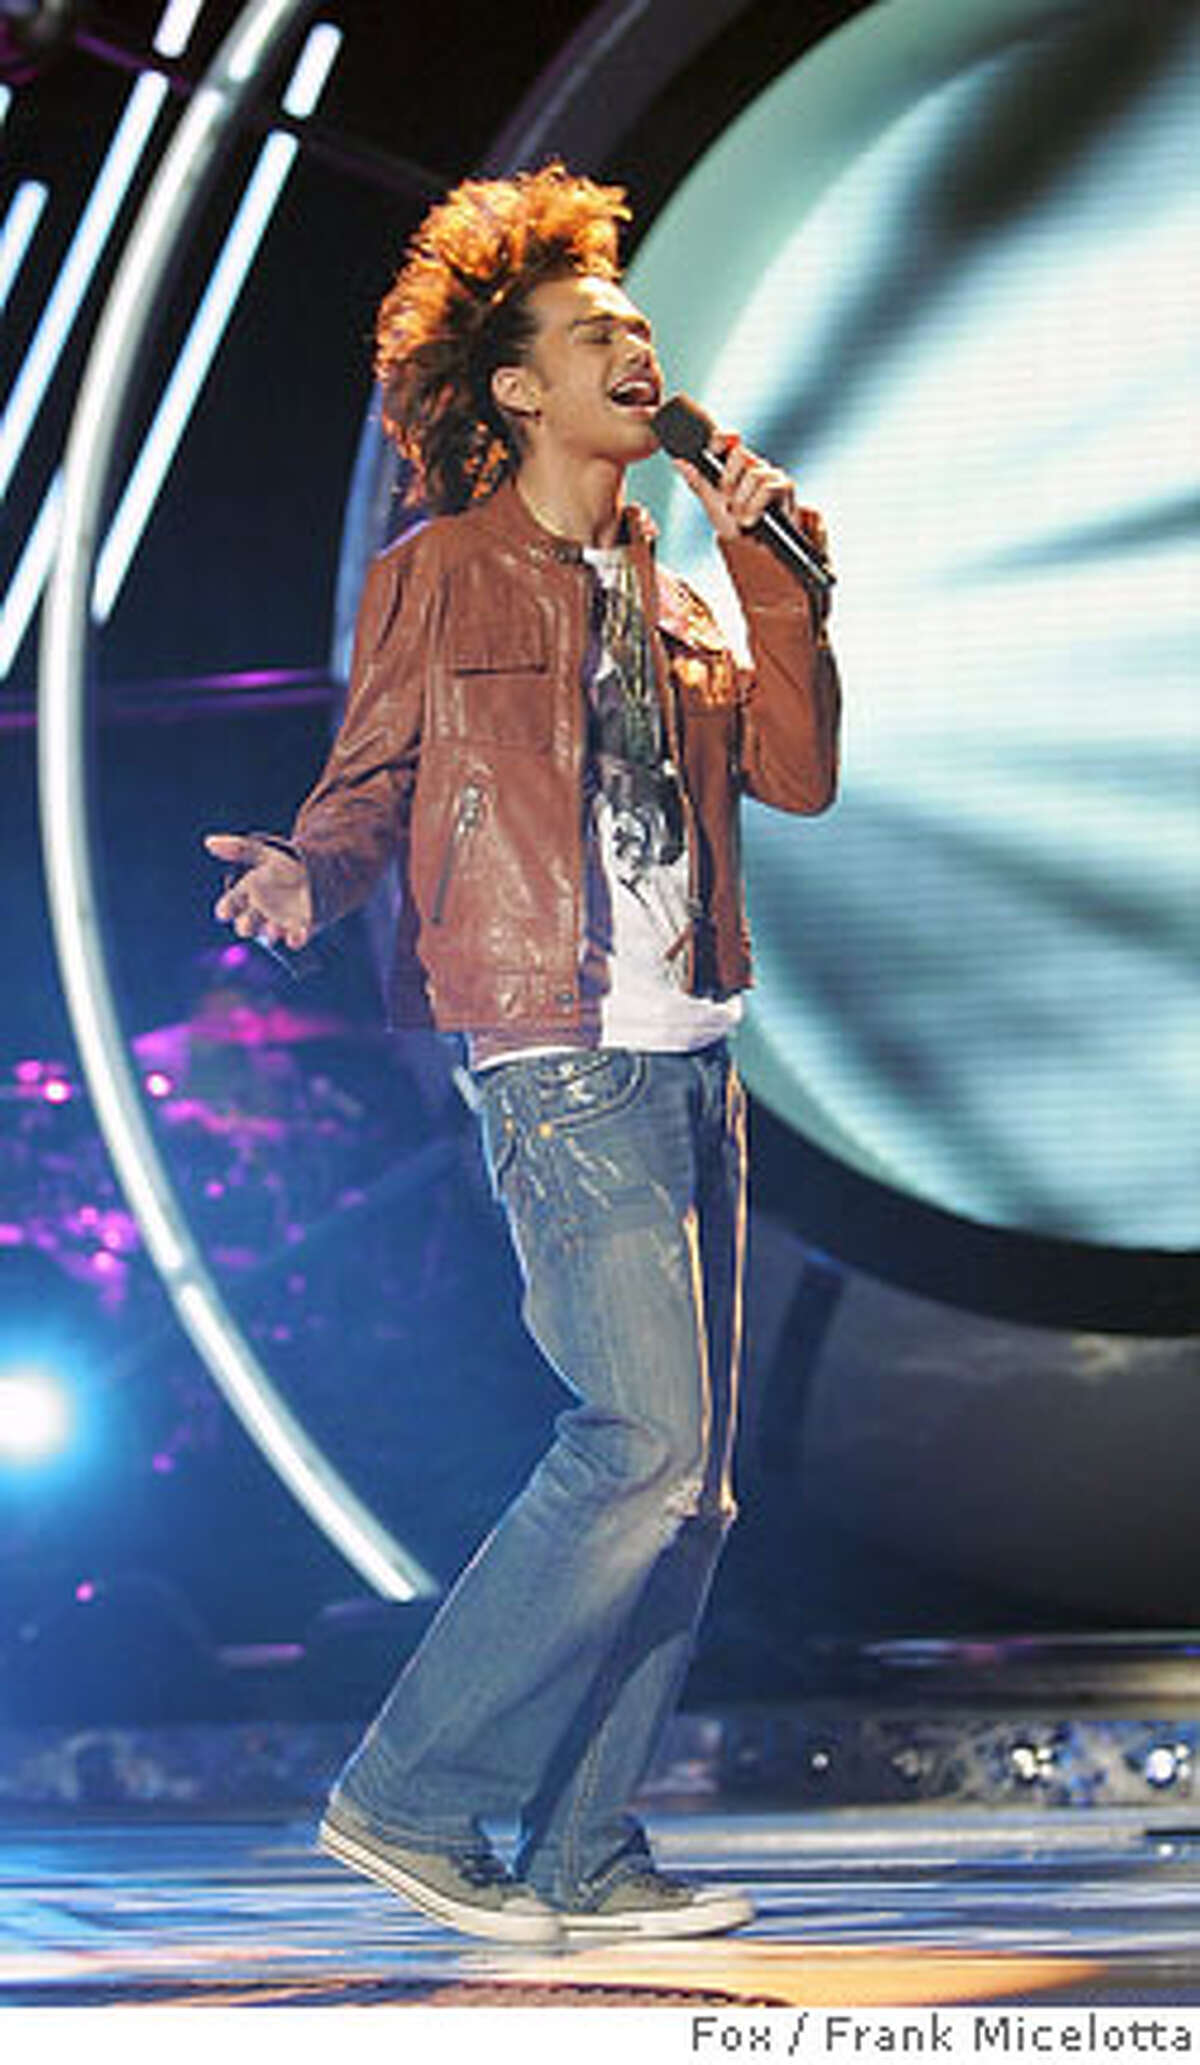 """(NYT23) UNDATED -- March 30, 2007 -- TV-WORST-IDOL -- Sanjaya Malakar performs on """"American Idol."""" Malakar has been an unlikely success. ( Fox / Frank Micelotta/Fox via The New York Times) EDITORIAL USE ONLY - MAGS OUT/NO SALES - FOR USE ONLY WITH STORY SLUGGED: TV-WORST-IDOL BY EDWARD WYATT - ALL OTHER USE PROHIBITED GAMING05 Ran on: 04-05-2007 Sanjaya Malakar has surprised many by advancing each week on Foxs TV show American Idol. Ran on: 07-15-2007"""